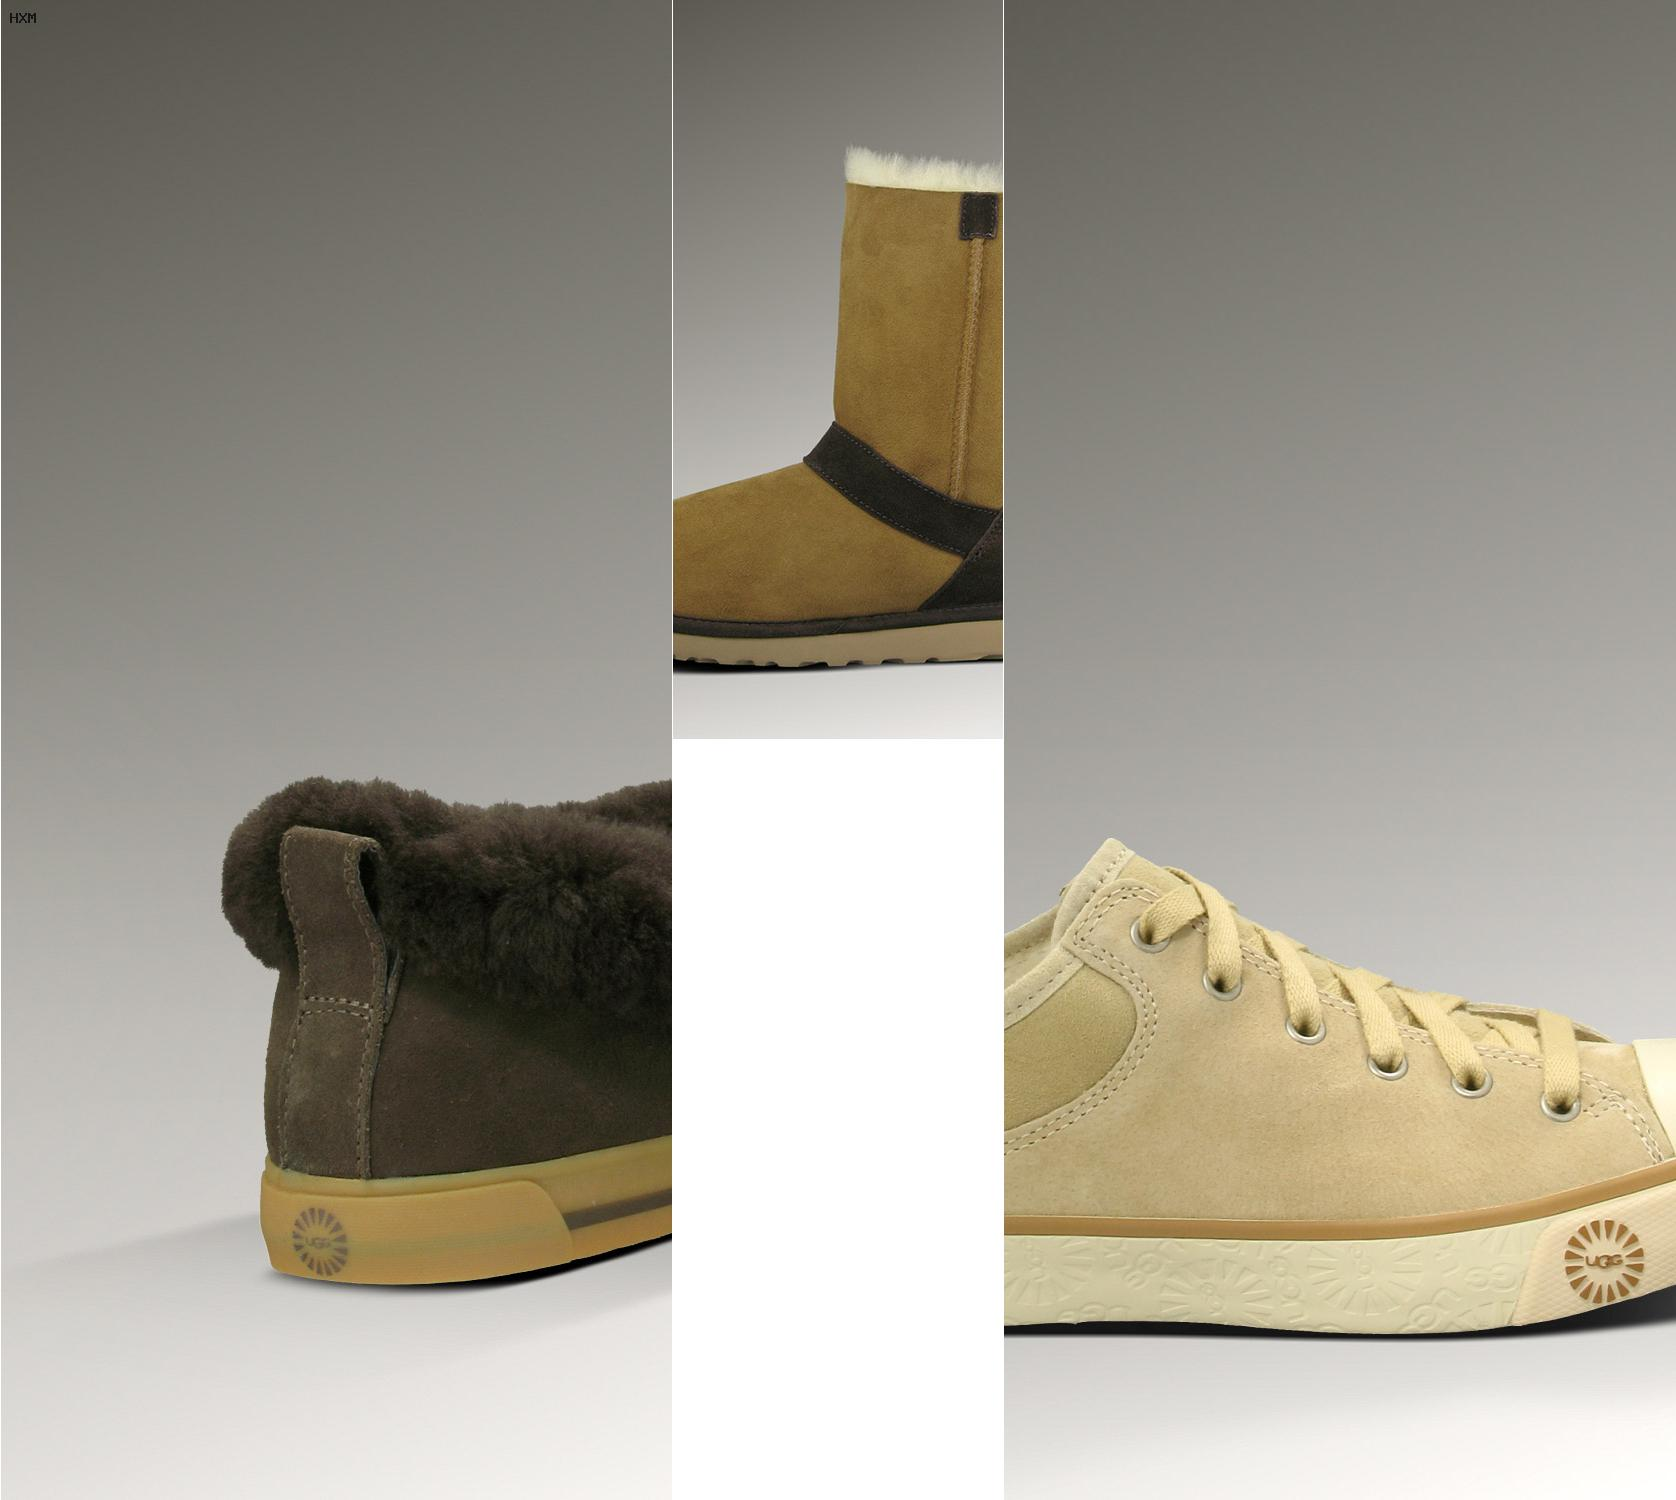 chaussures style ugg fille